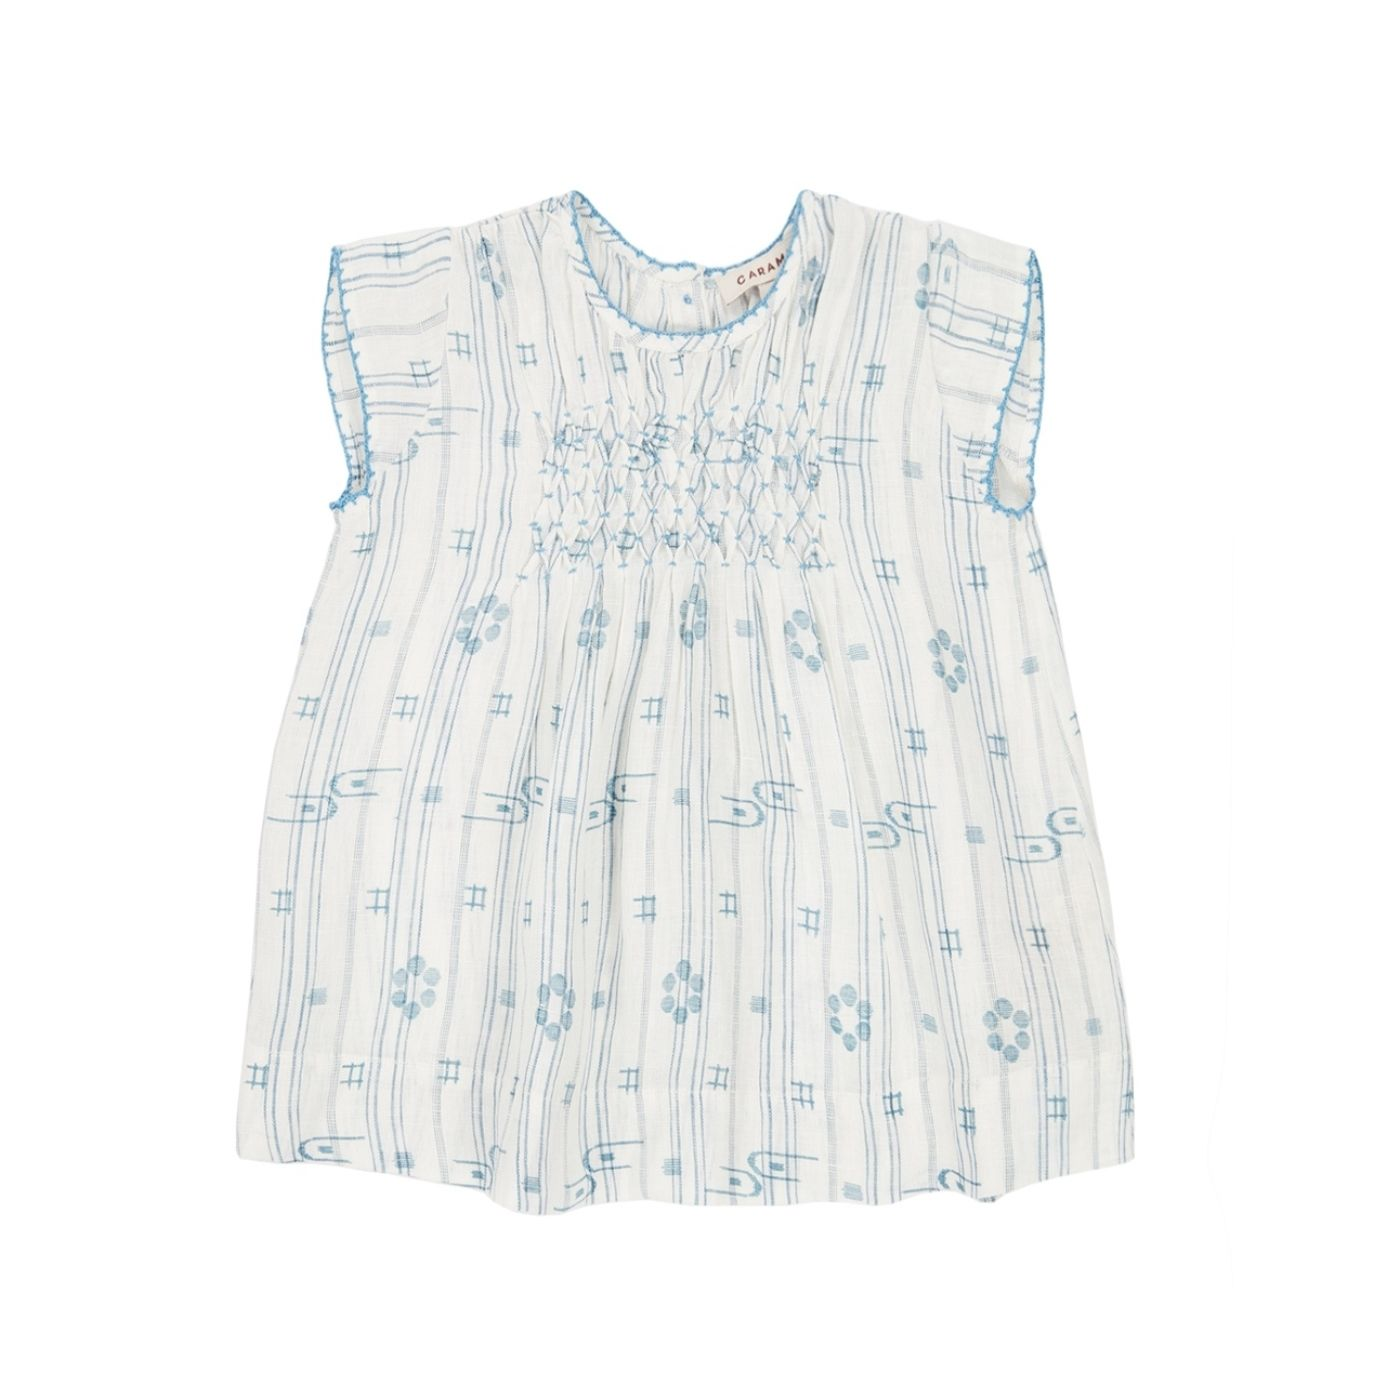 Caramel Baby & Child - Dress Clapham Baby Blue - 1